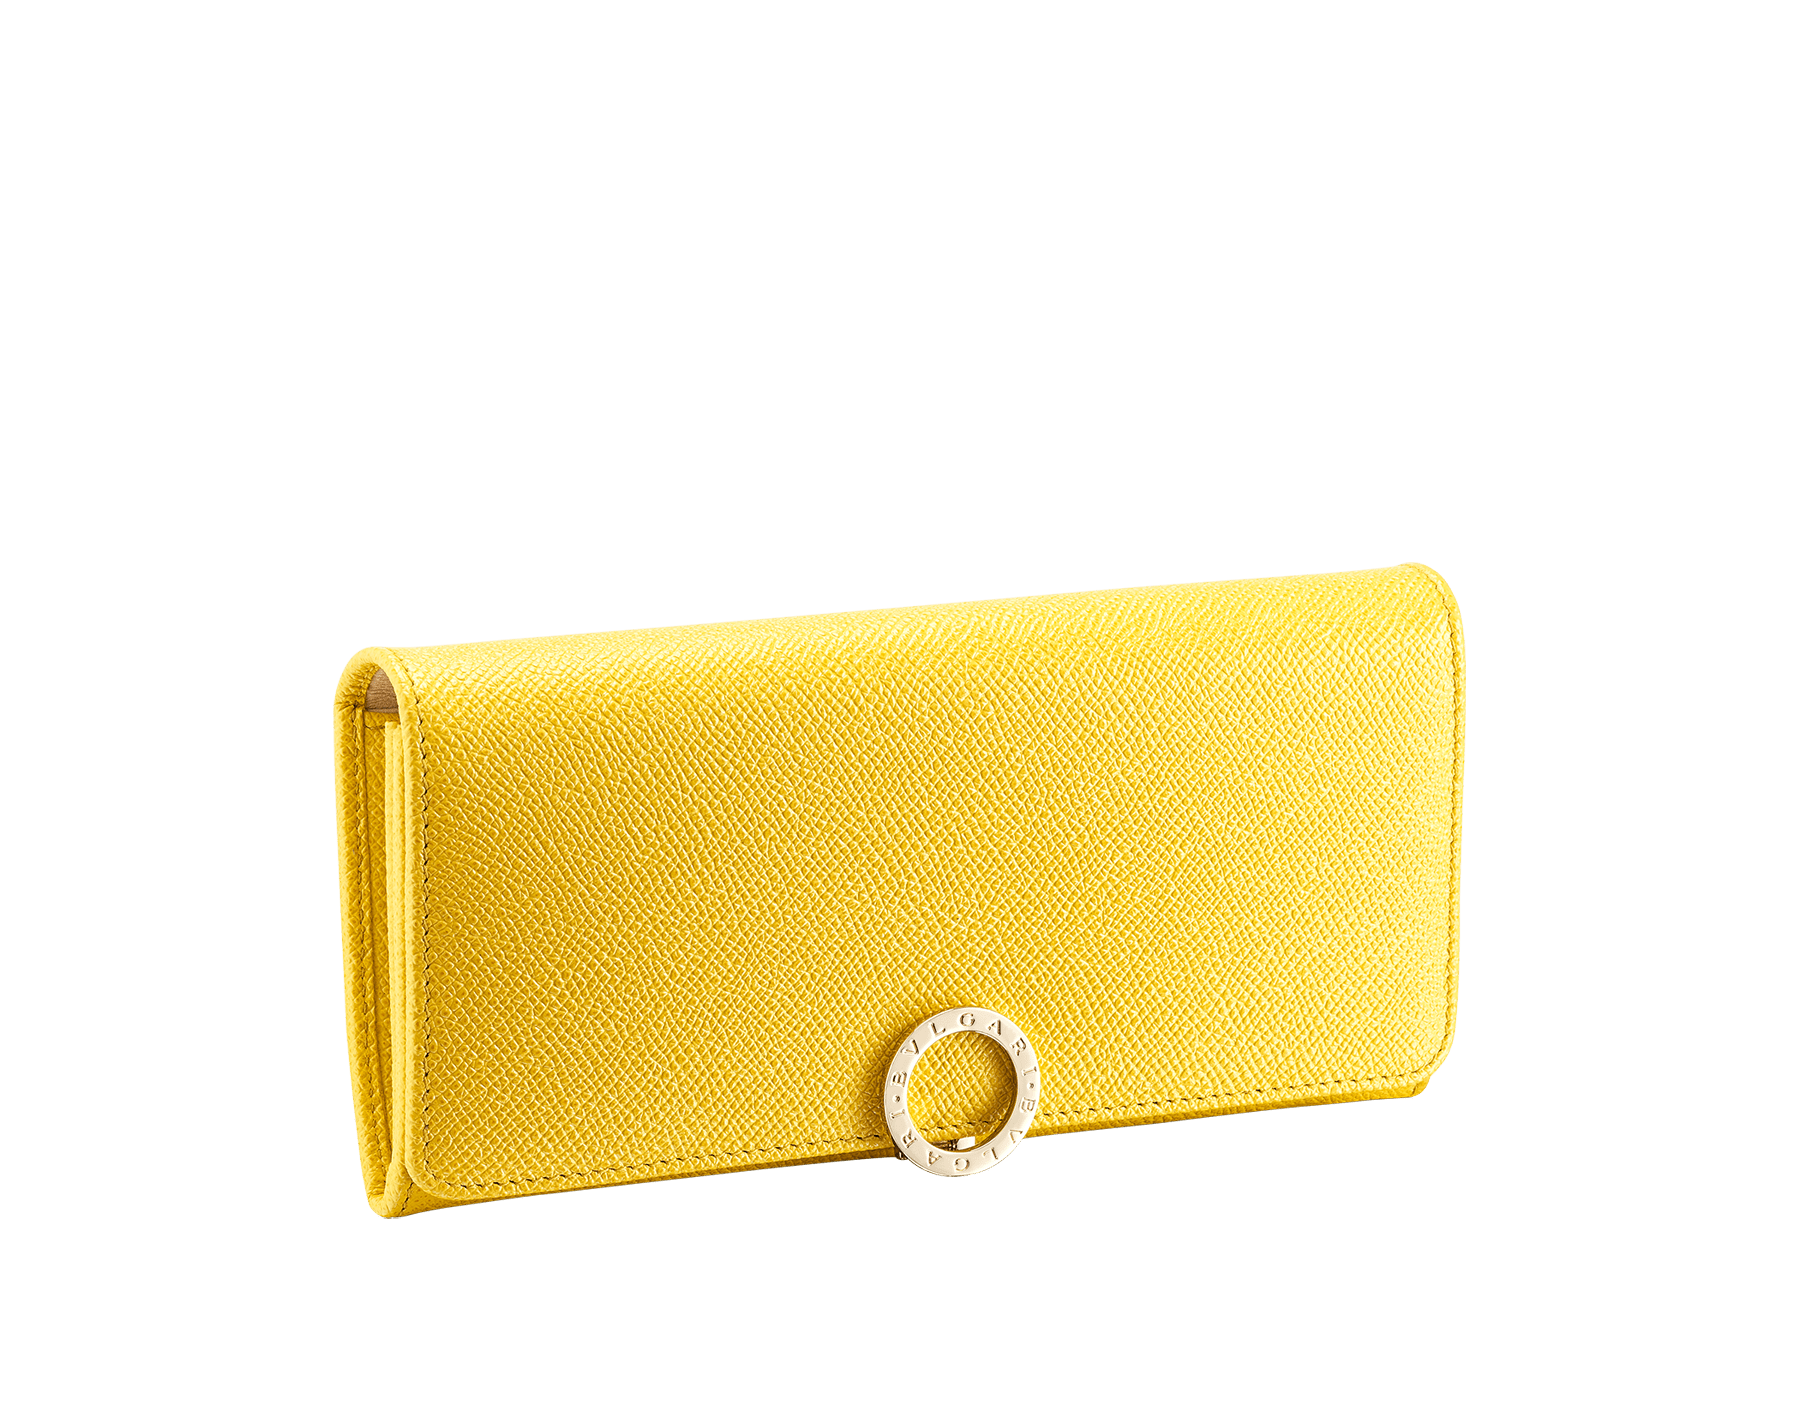 """BVLGARI BVLGARI"" large wallet in taffy quartz bright grain calf leather and berry tourmaline nappa leather. Iconic logo clip closure in light gold plated brass. 579-WLT-SLI-POC-CLb image 1"